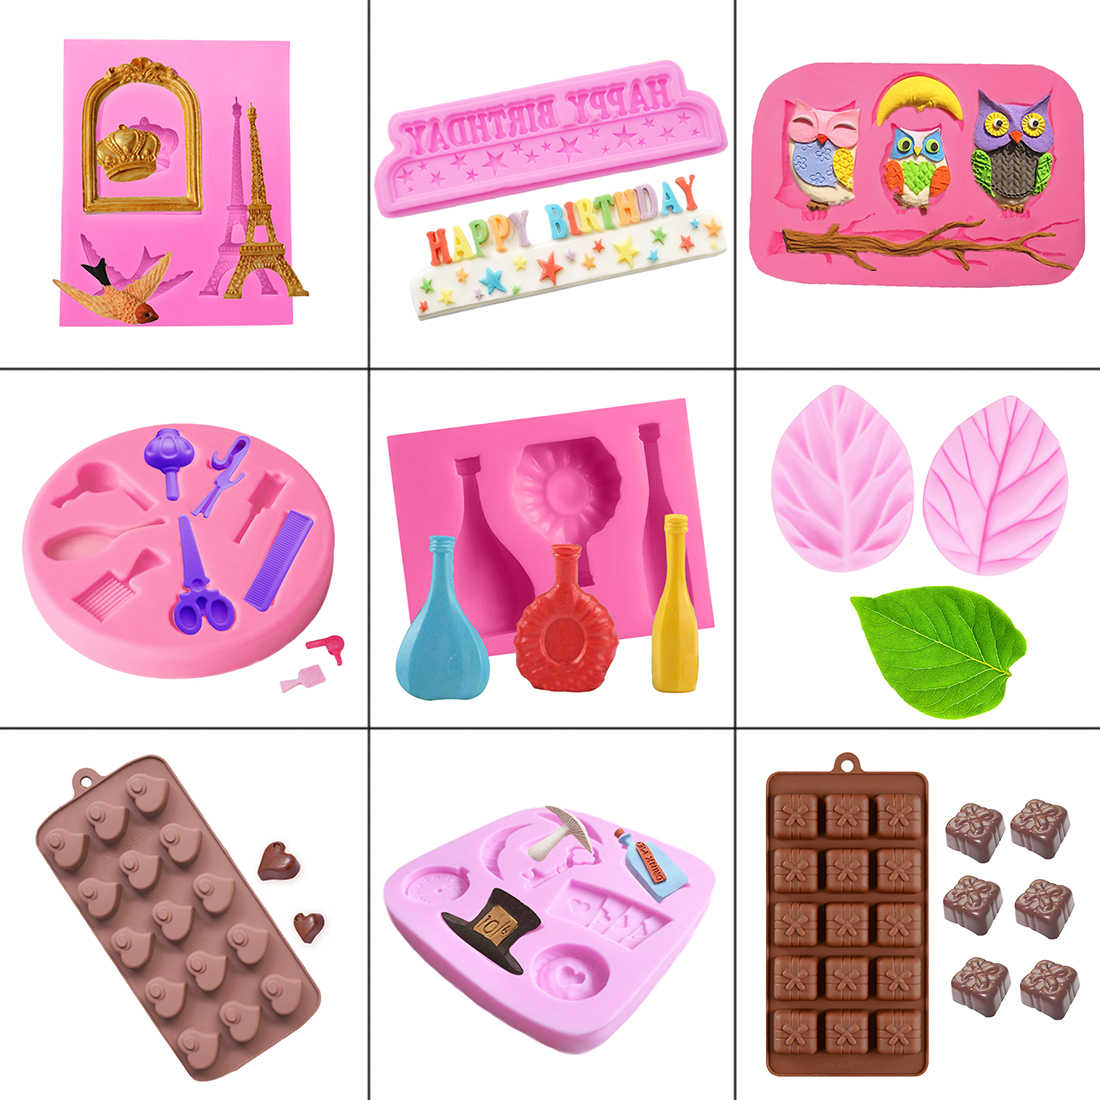 1PC Silicone Cake Mold Chocolate Soap Molds Cake Stencil Bakery Pastry Baking Kitchen Accessories moules silicone patisserie